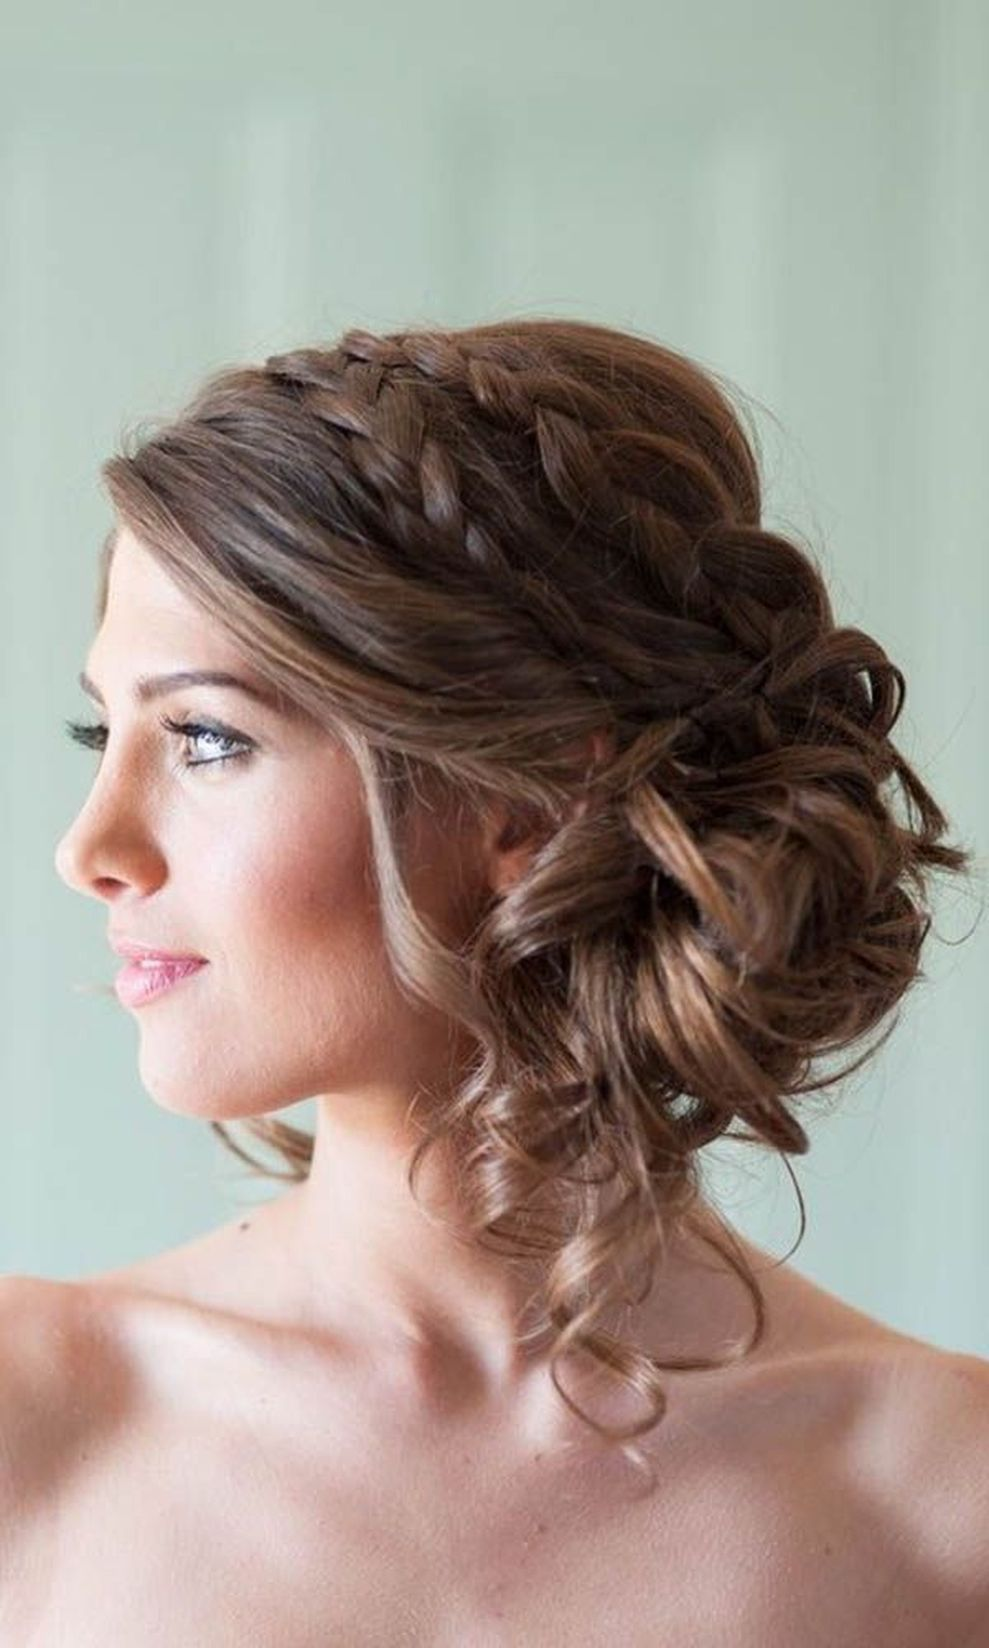 Awesome beautiful wedding hairstyles ideas for medium length hair